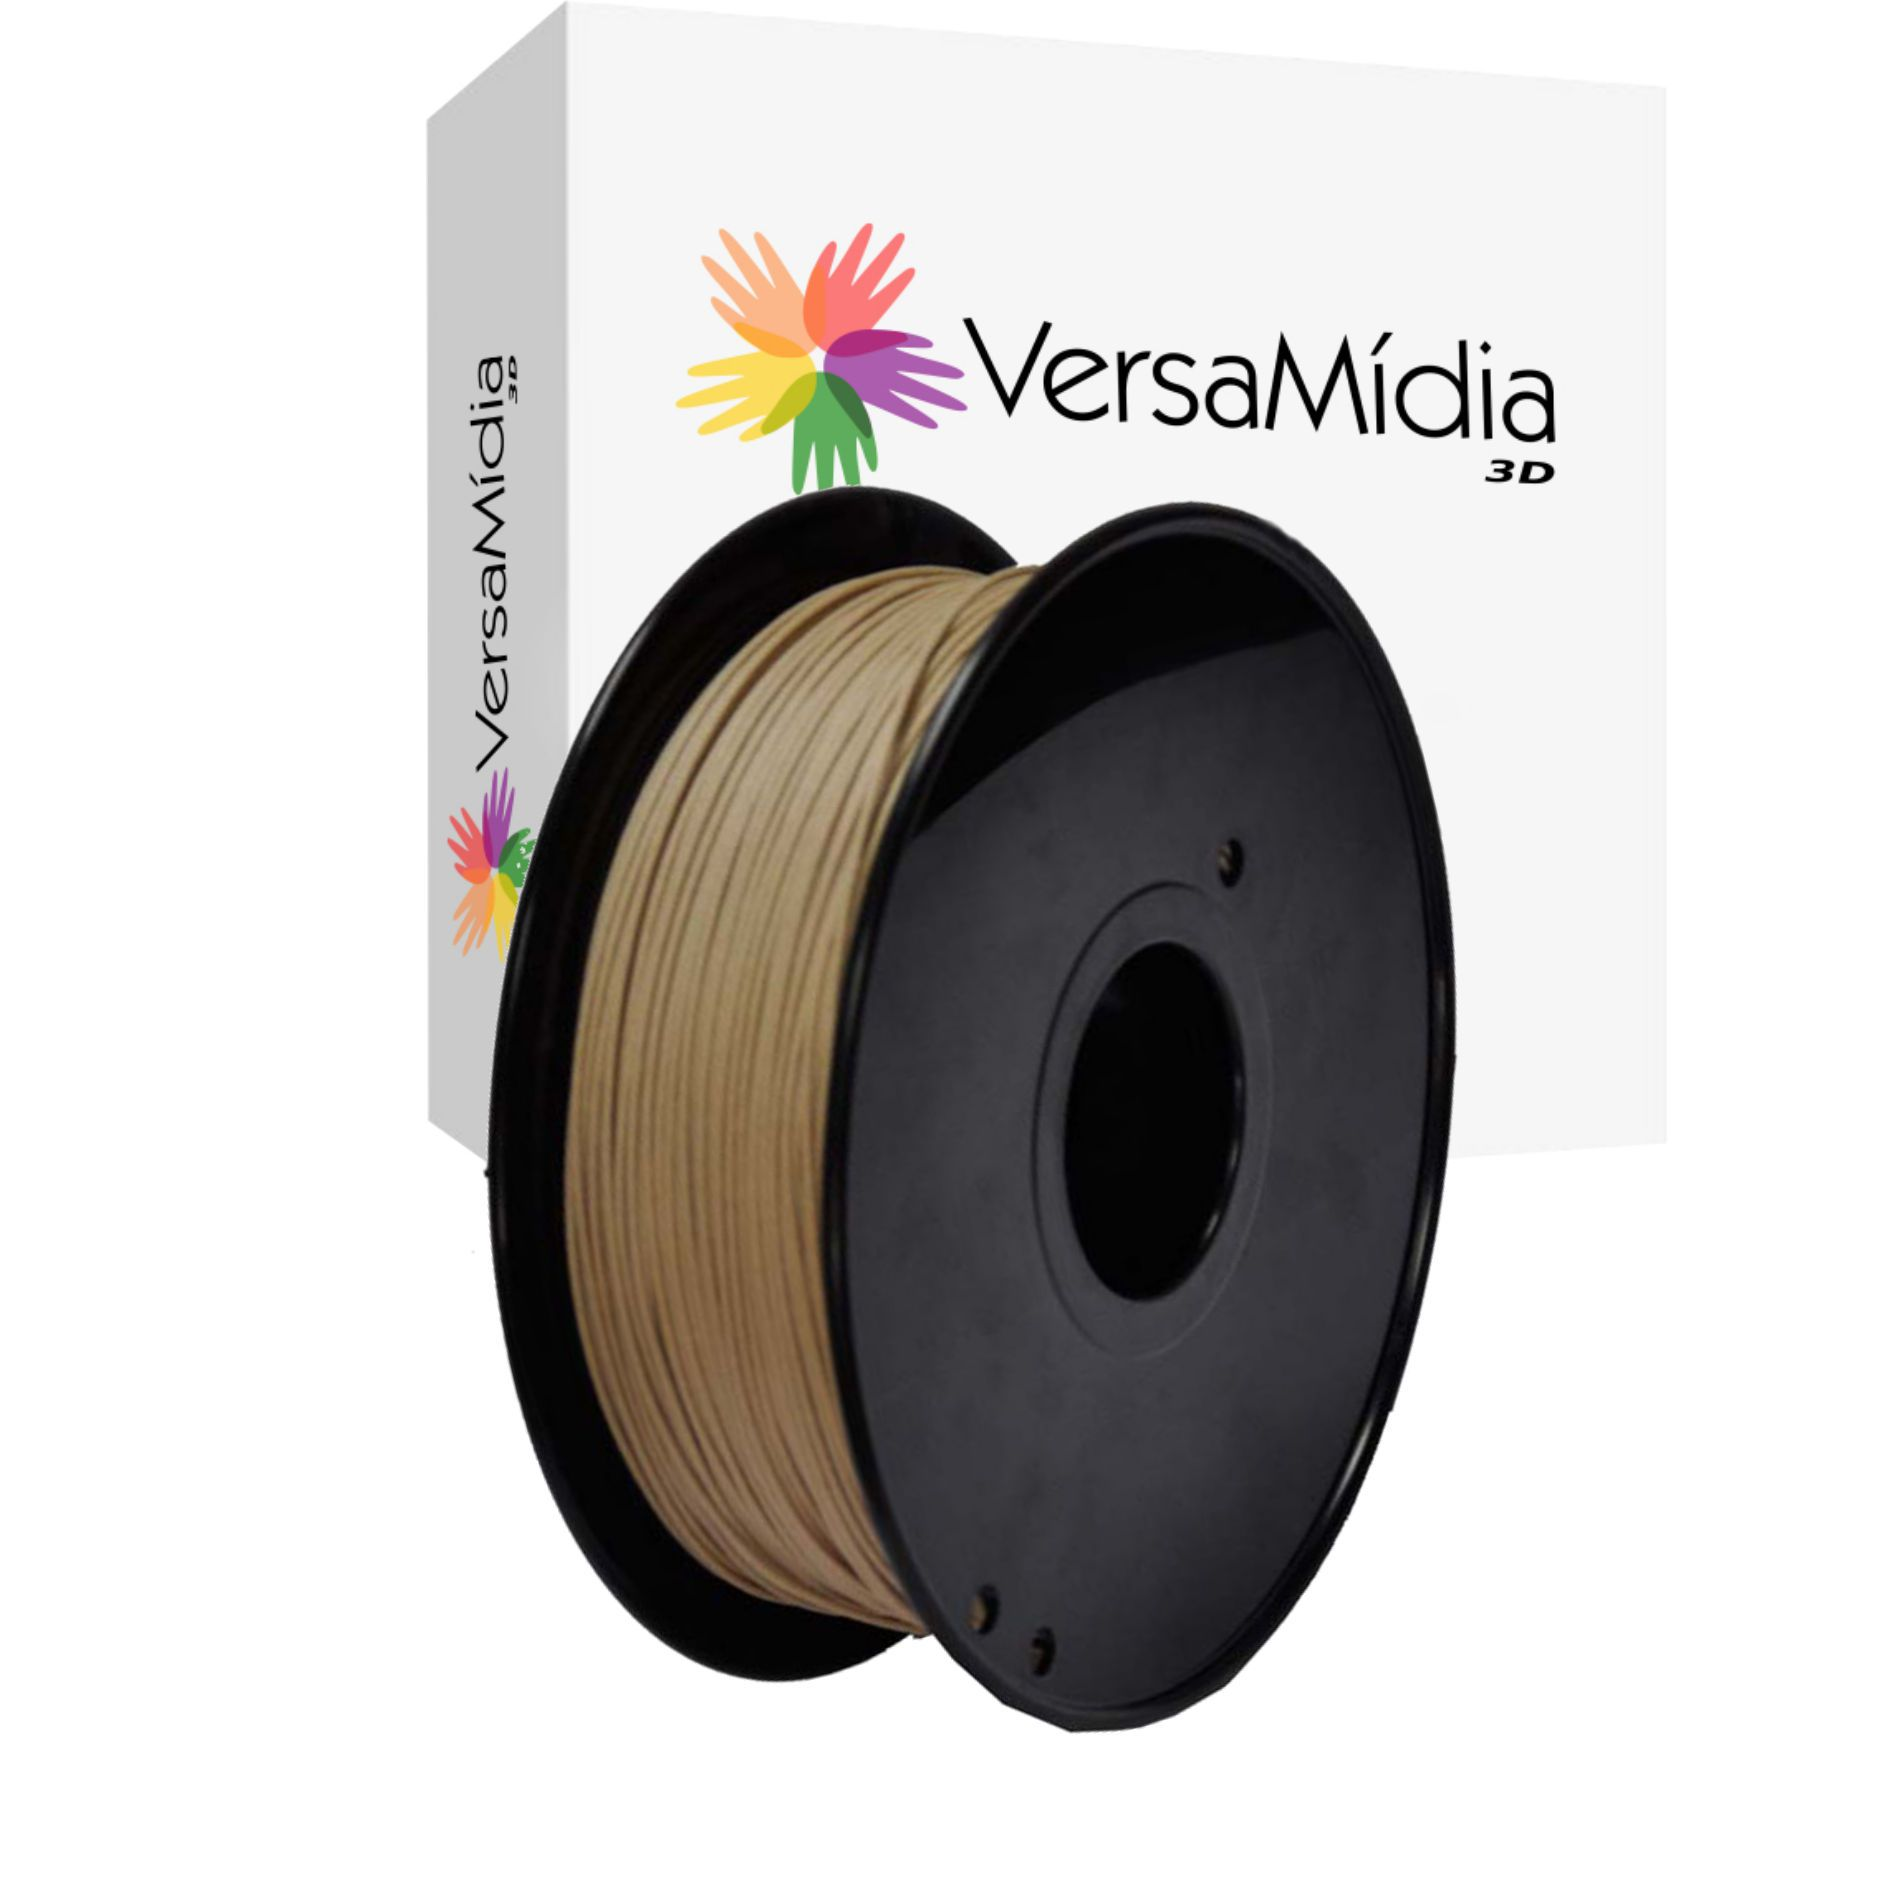 Filamento PLA cor Wood Natural Madeira  VersaMídia 3D Premium  1.75mm Black Spool  - 11520